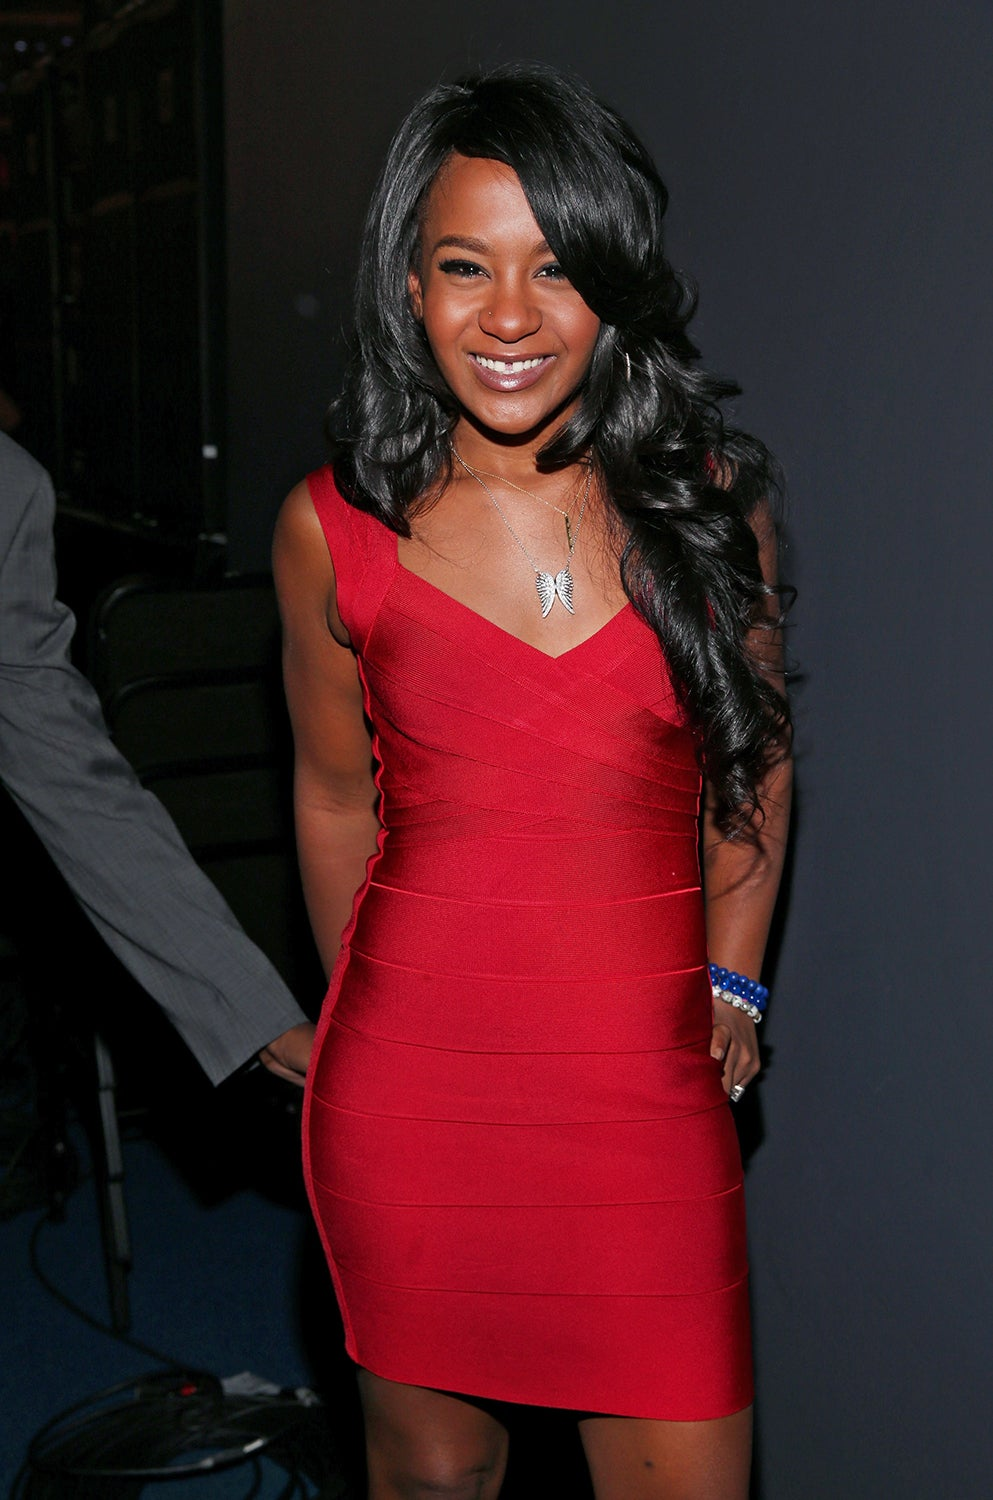 Bobbi Kristina Moved to Hospice Care: 'She is in God's Hands Now'